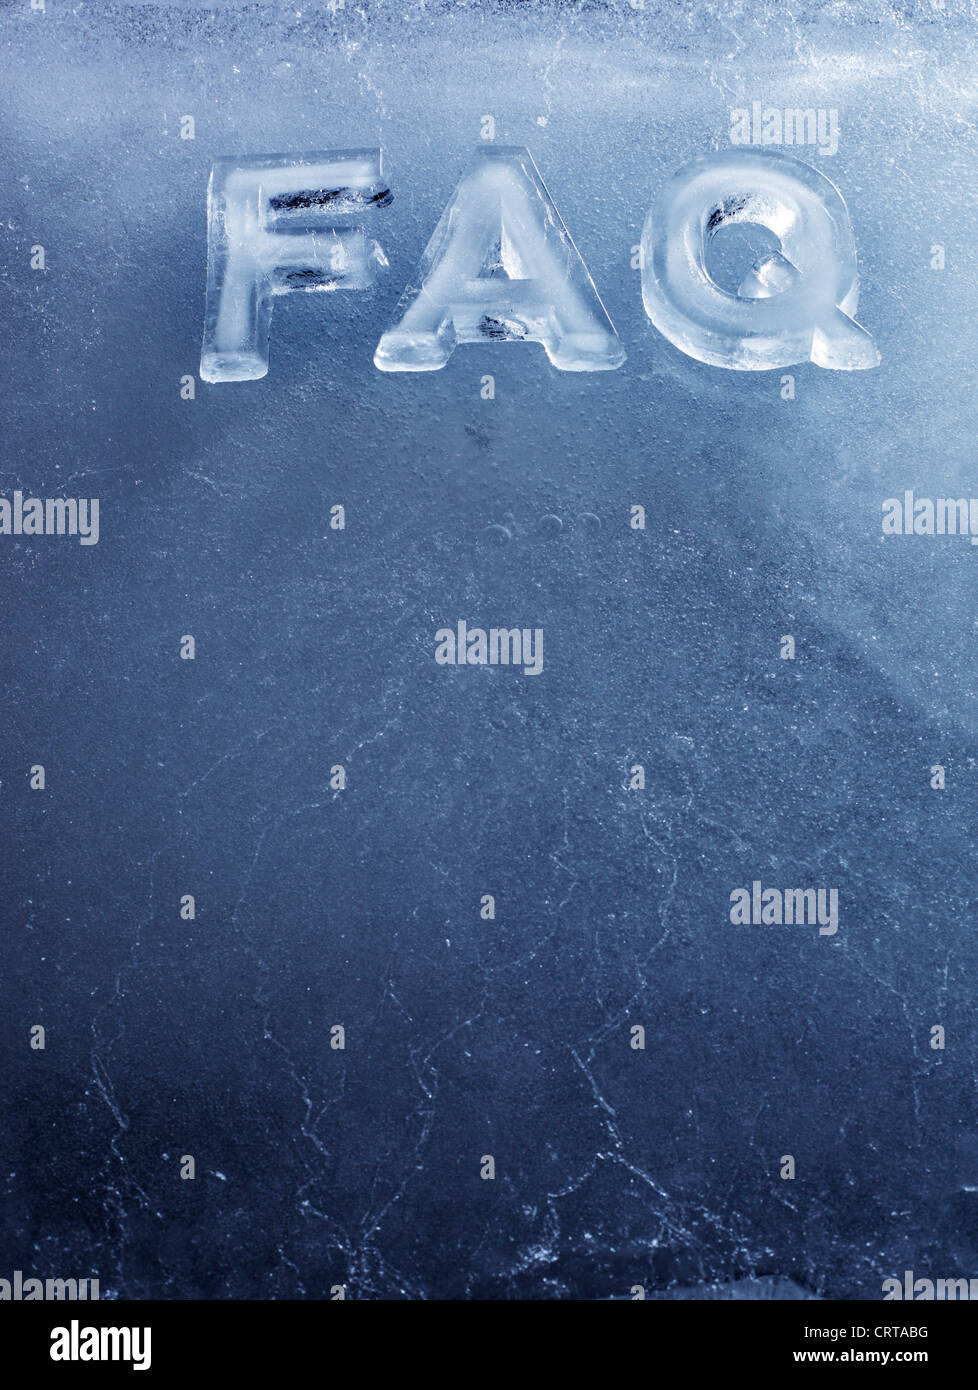 Acronym FAQ (Frequently Asked Questions) made with real ice letters. - Stock Image